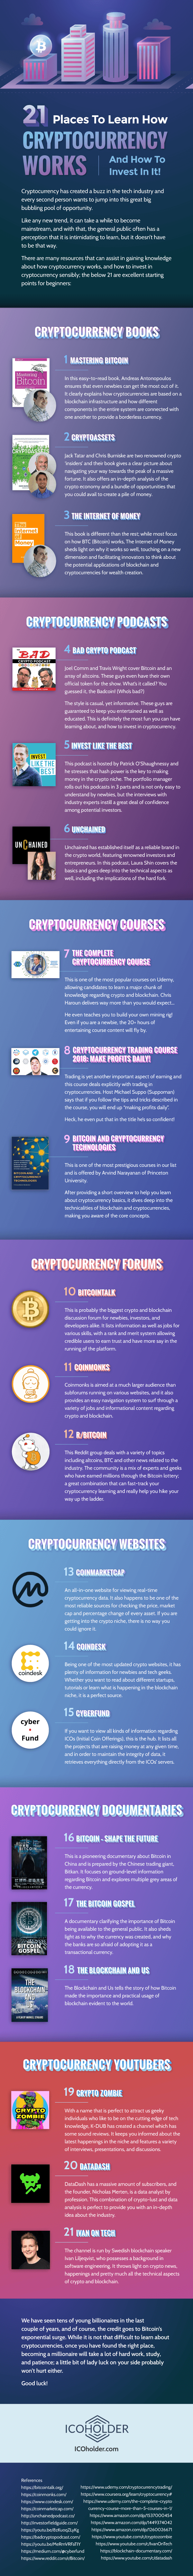 Best Crytocurrency Resources